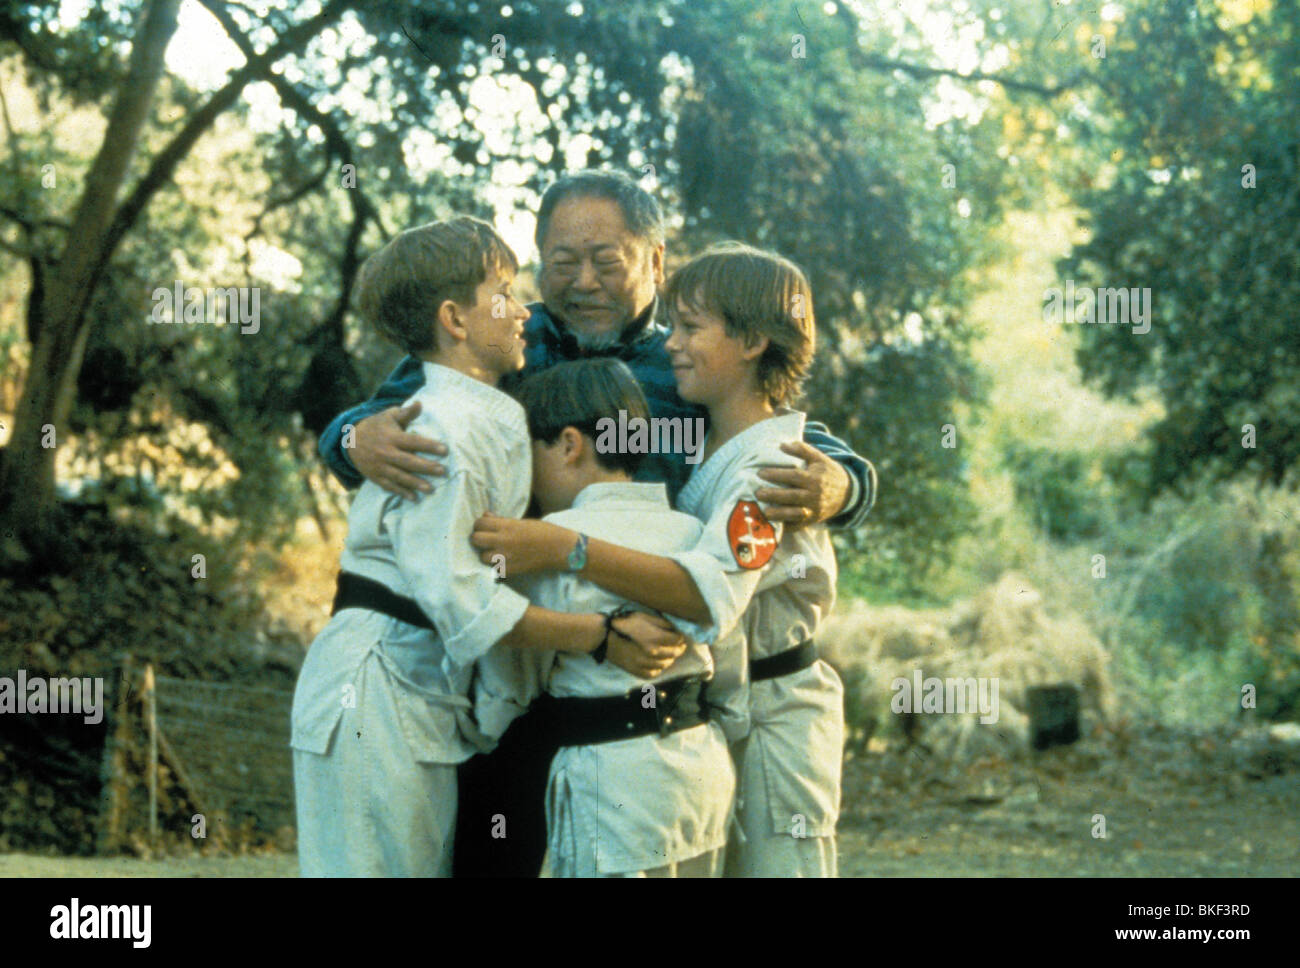 THREE NINJAS (1993) MICHAEL TREANOR, CHAD POWER, MAX ELLIOTT SLADE TNJA 005 - Stock Image